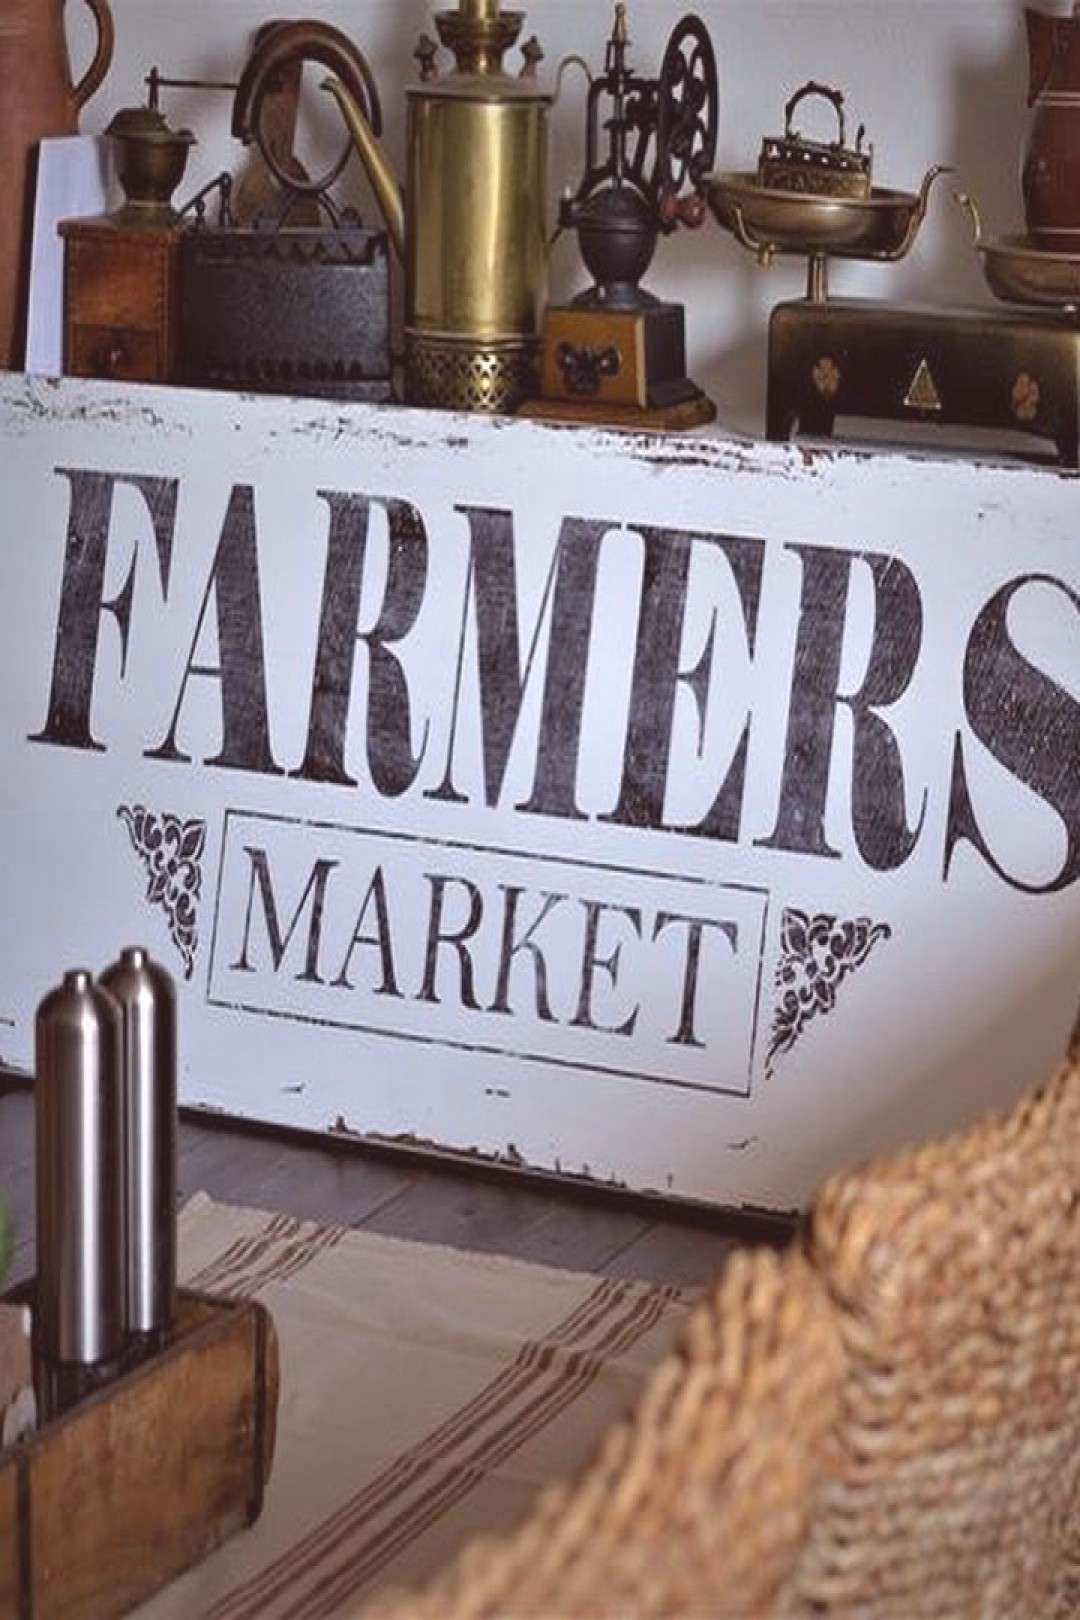 text that says FARMERS MARKET